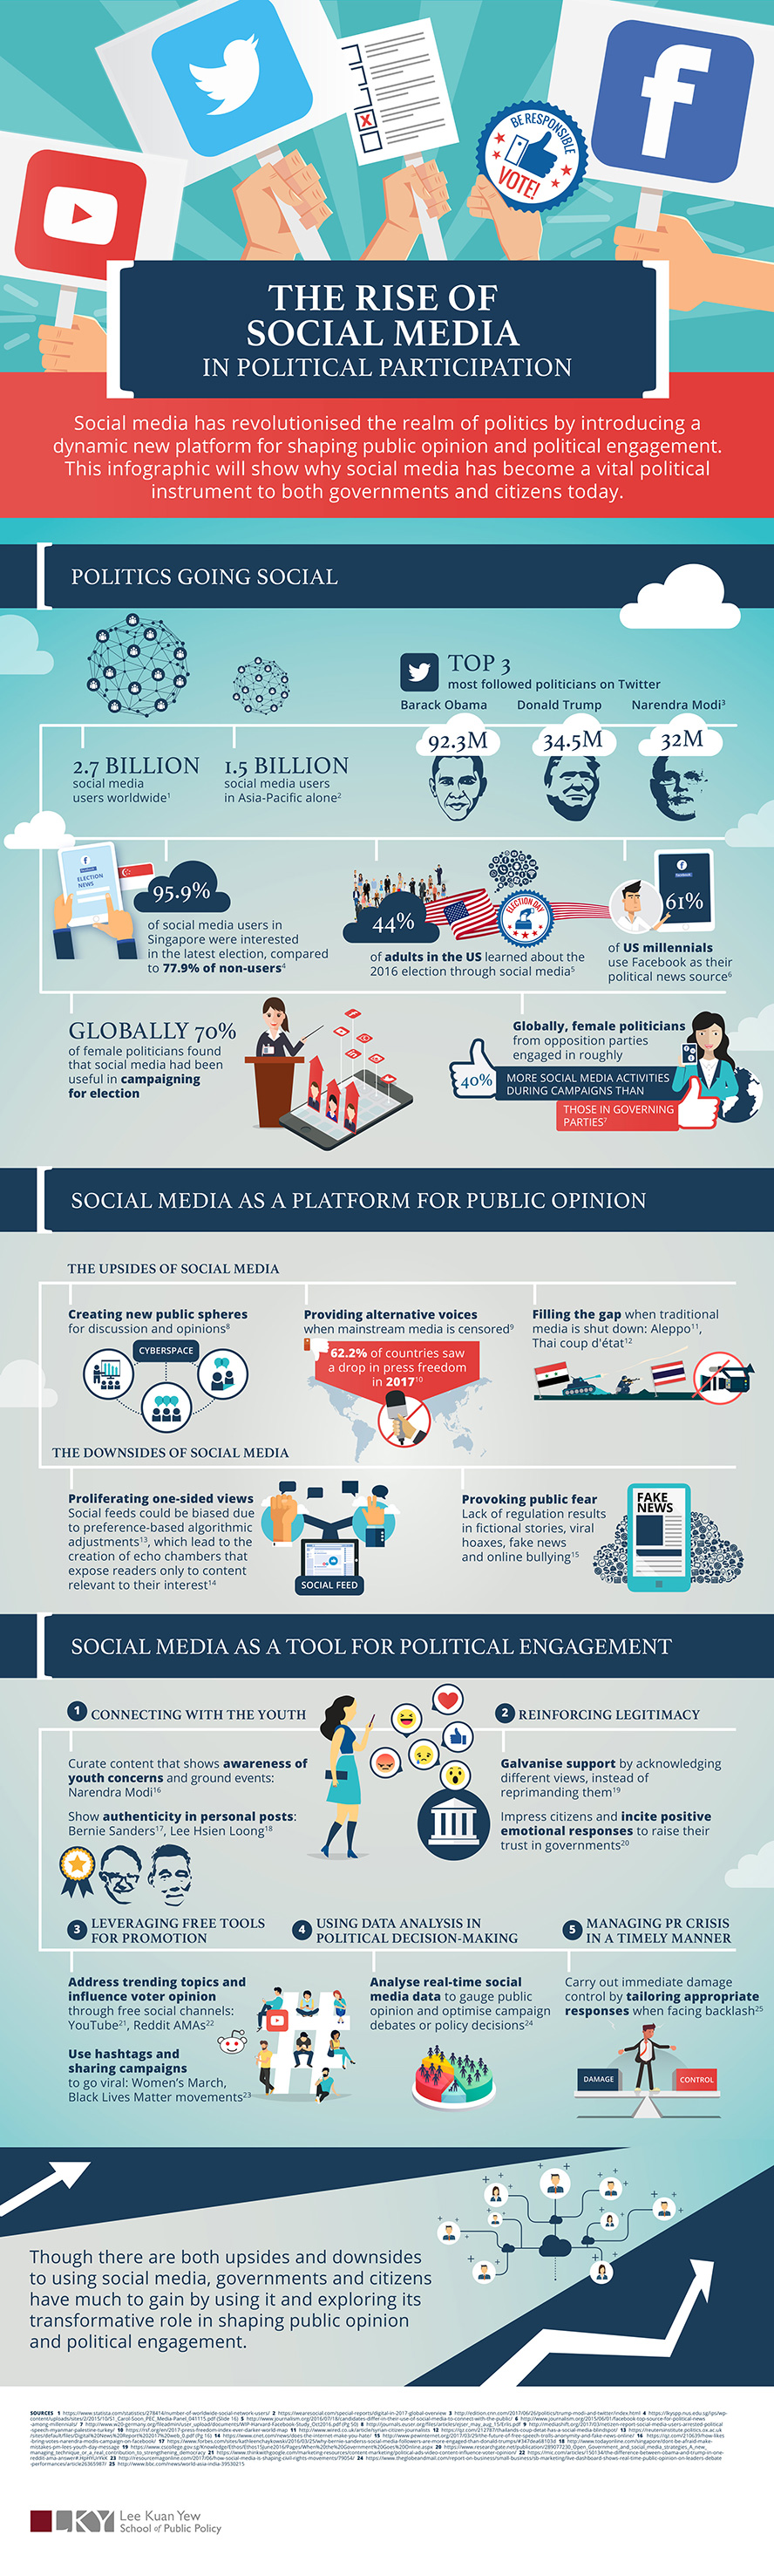 gia social media in politics optimised